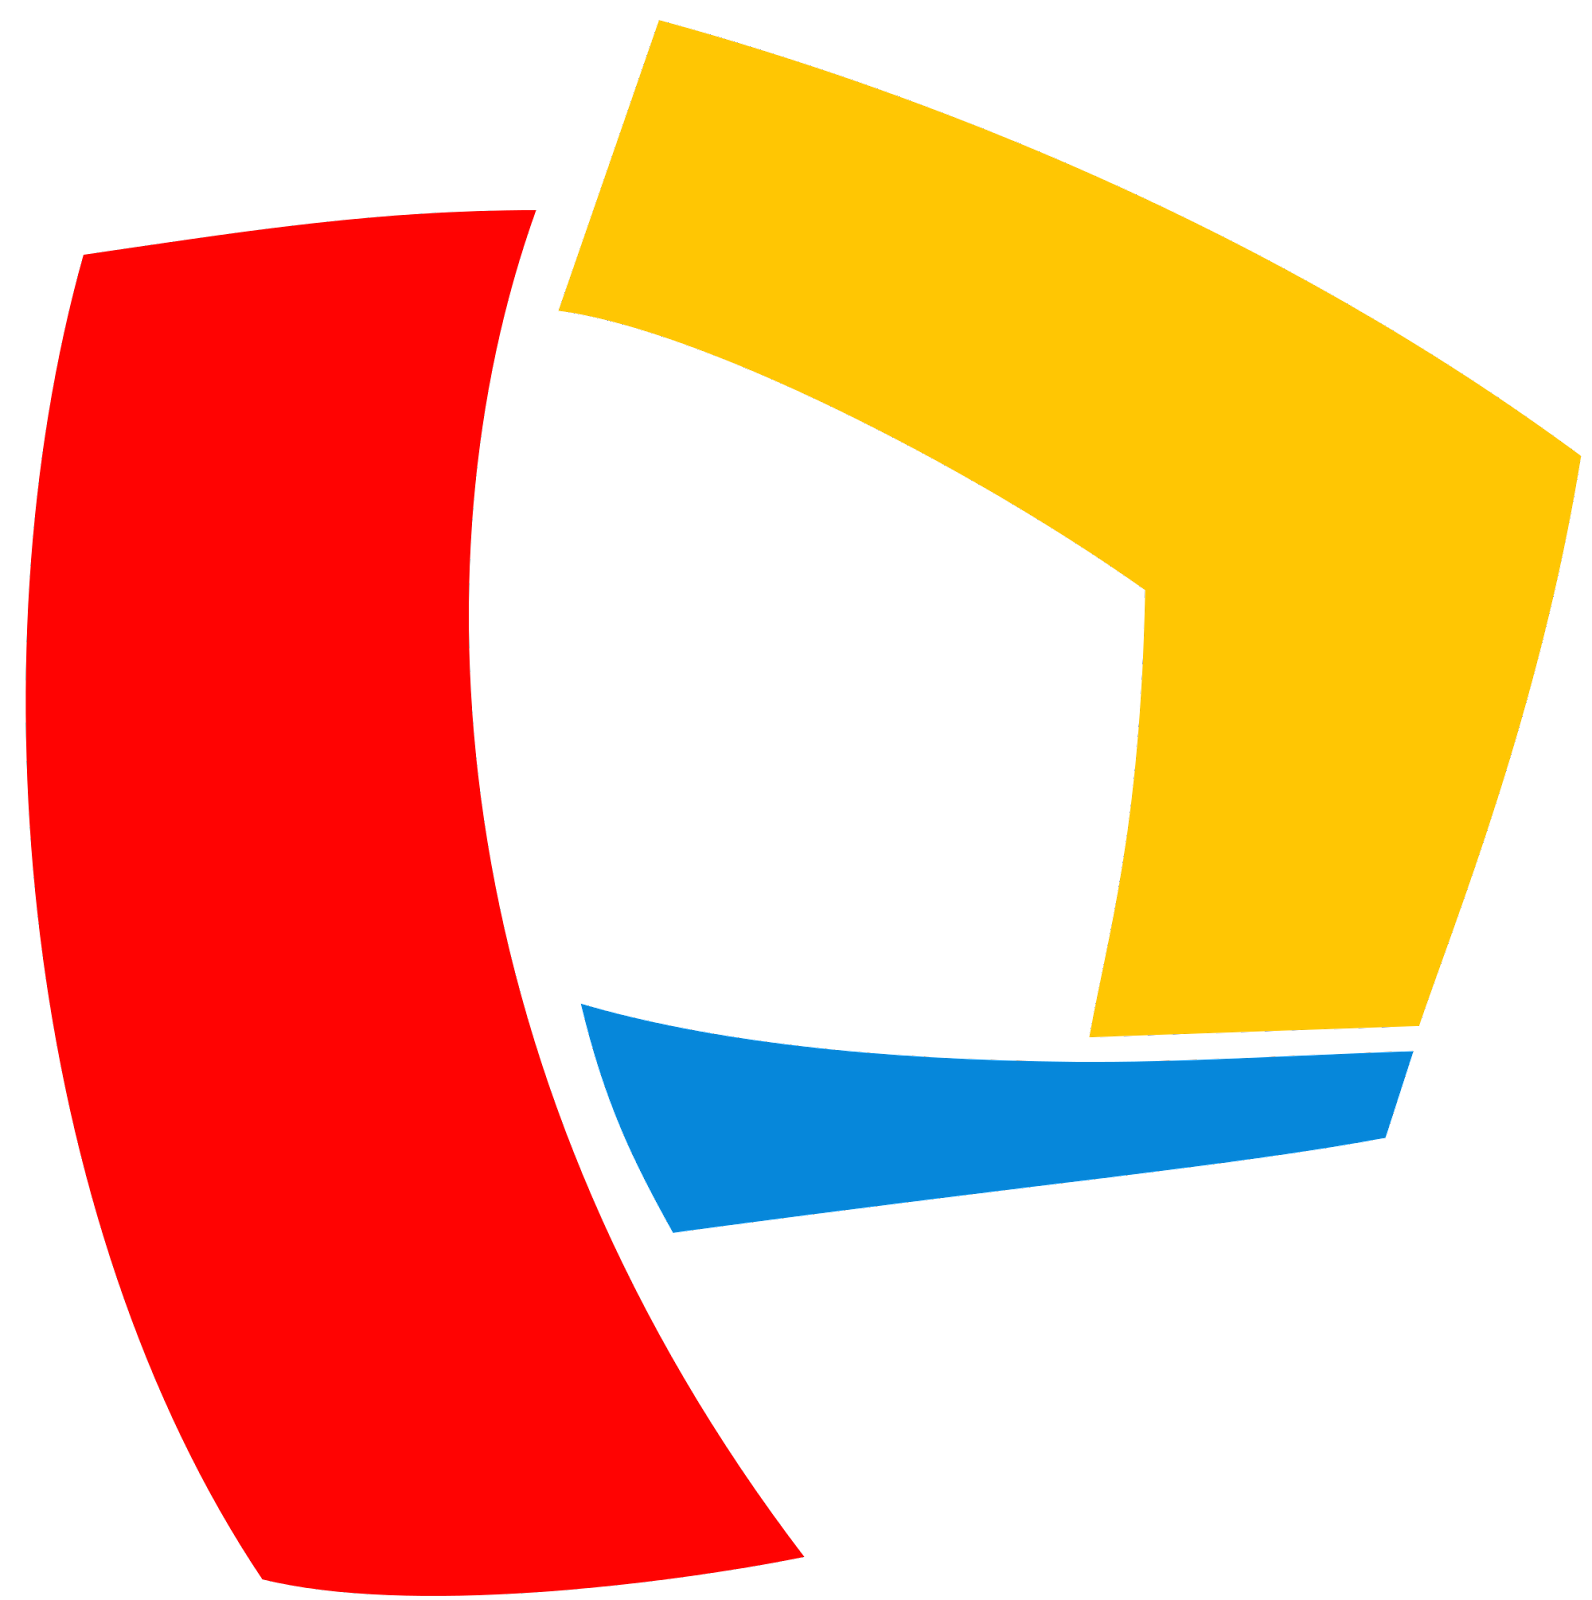 2000px-Panamericana-tv.svg.png